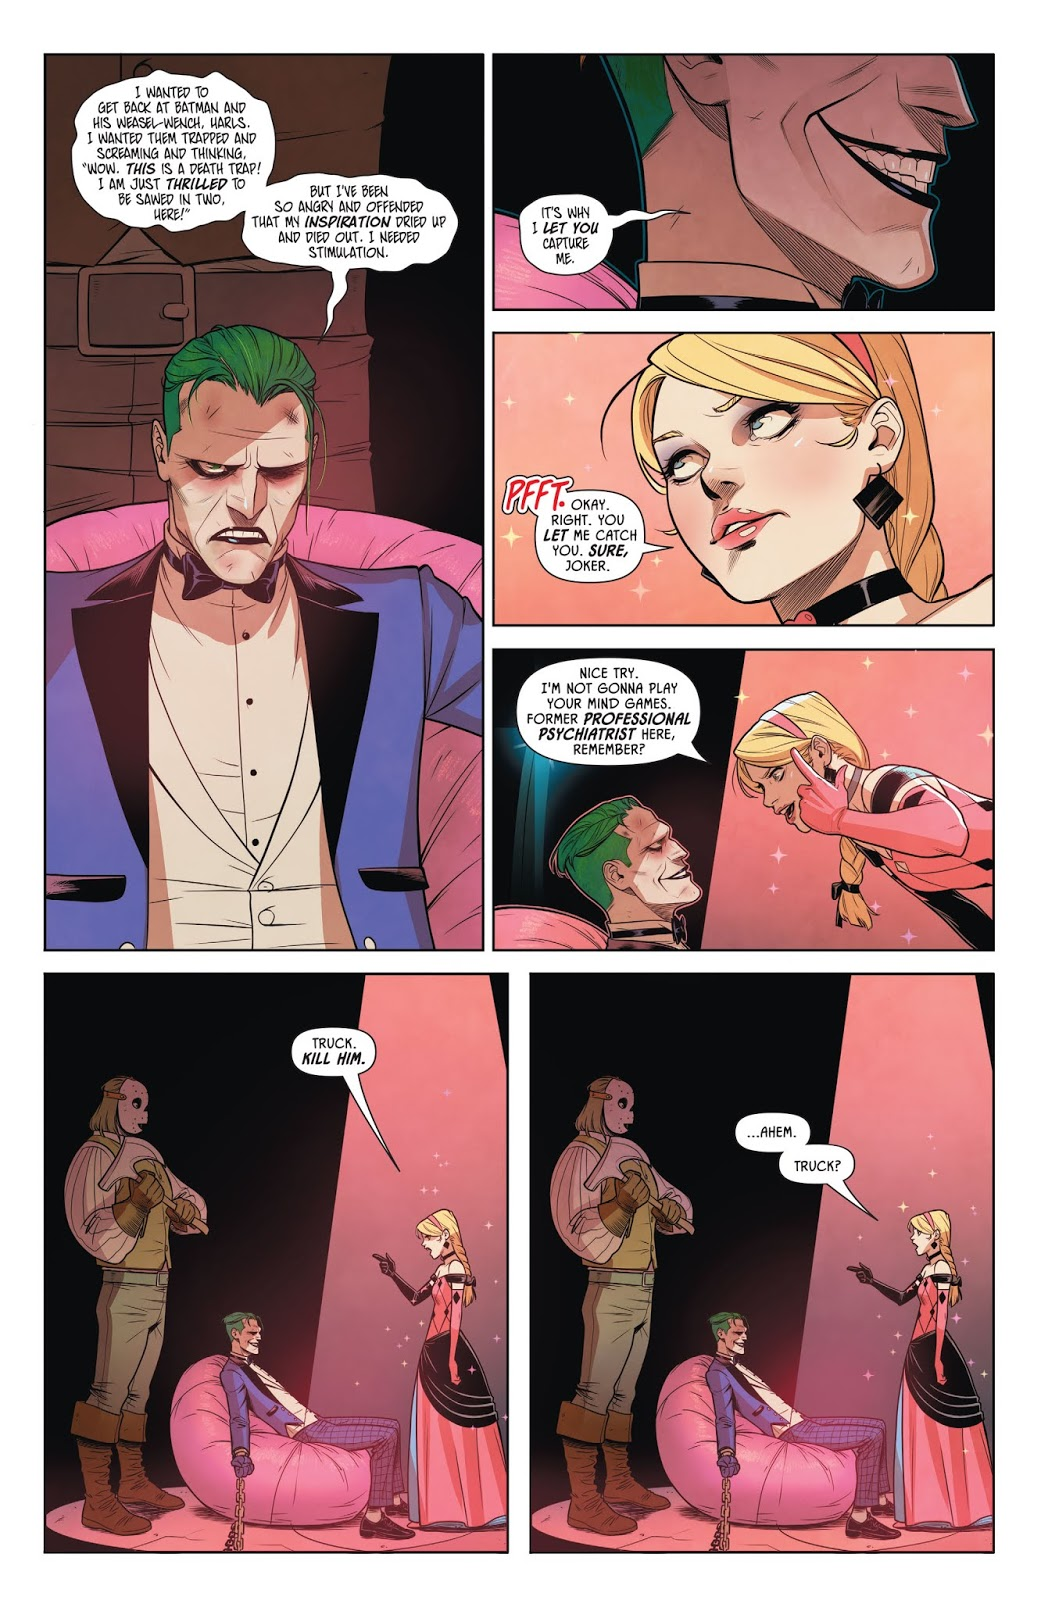 bfd73b56ad0d ... The Joker Is Jealous Of Harley Quinn ...